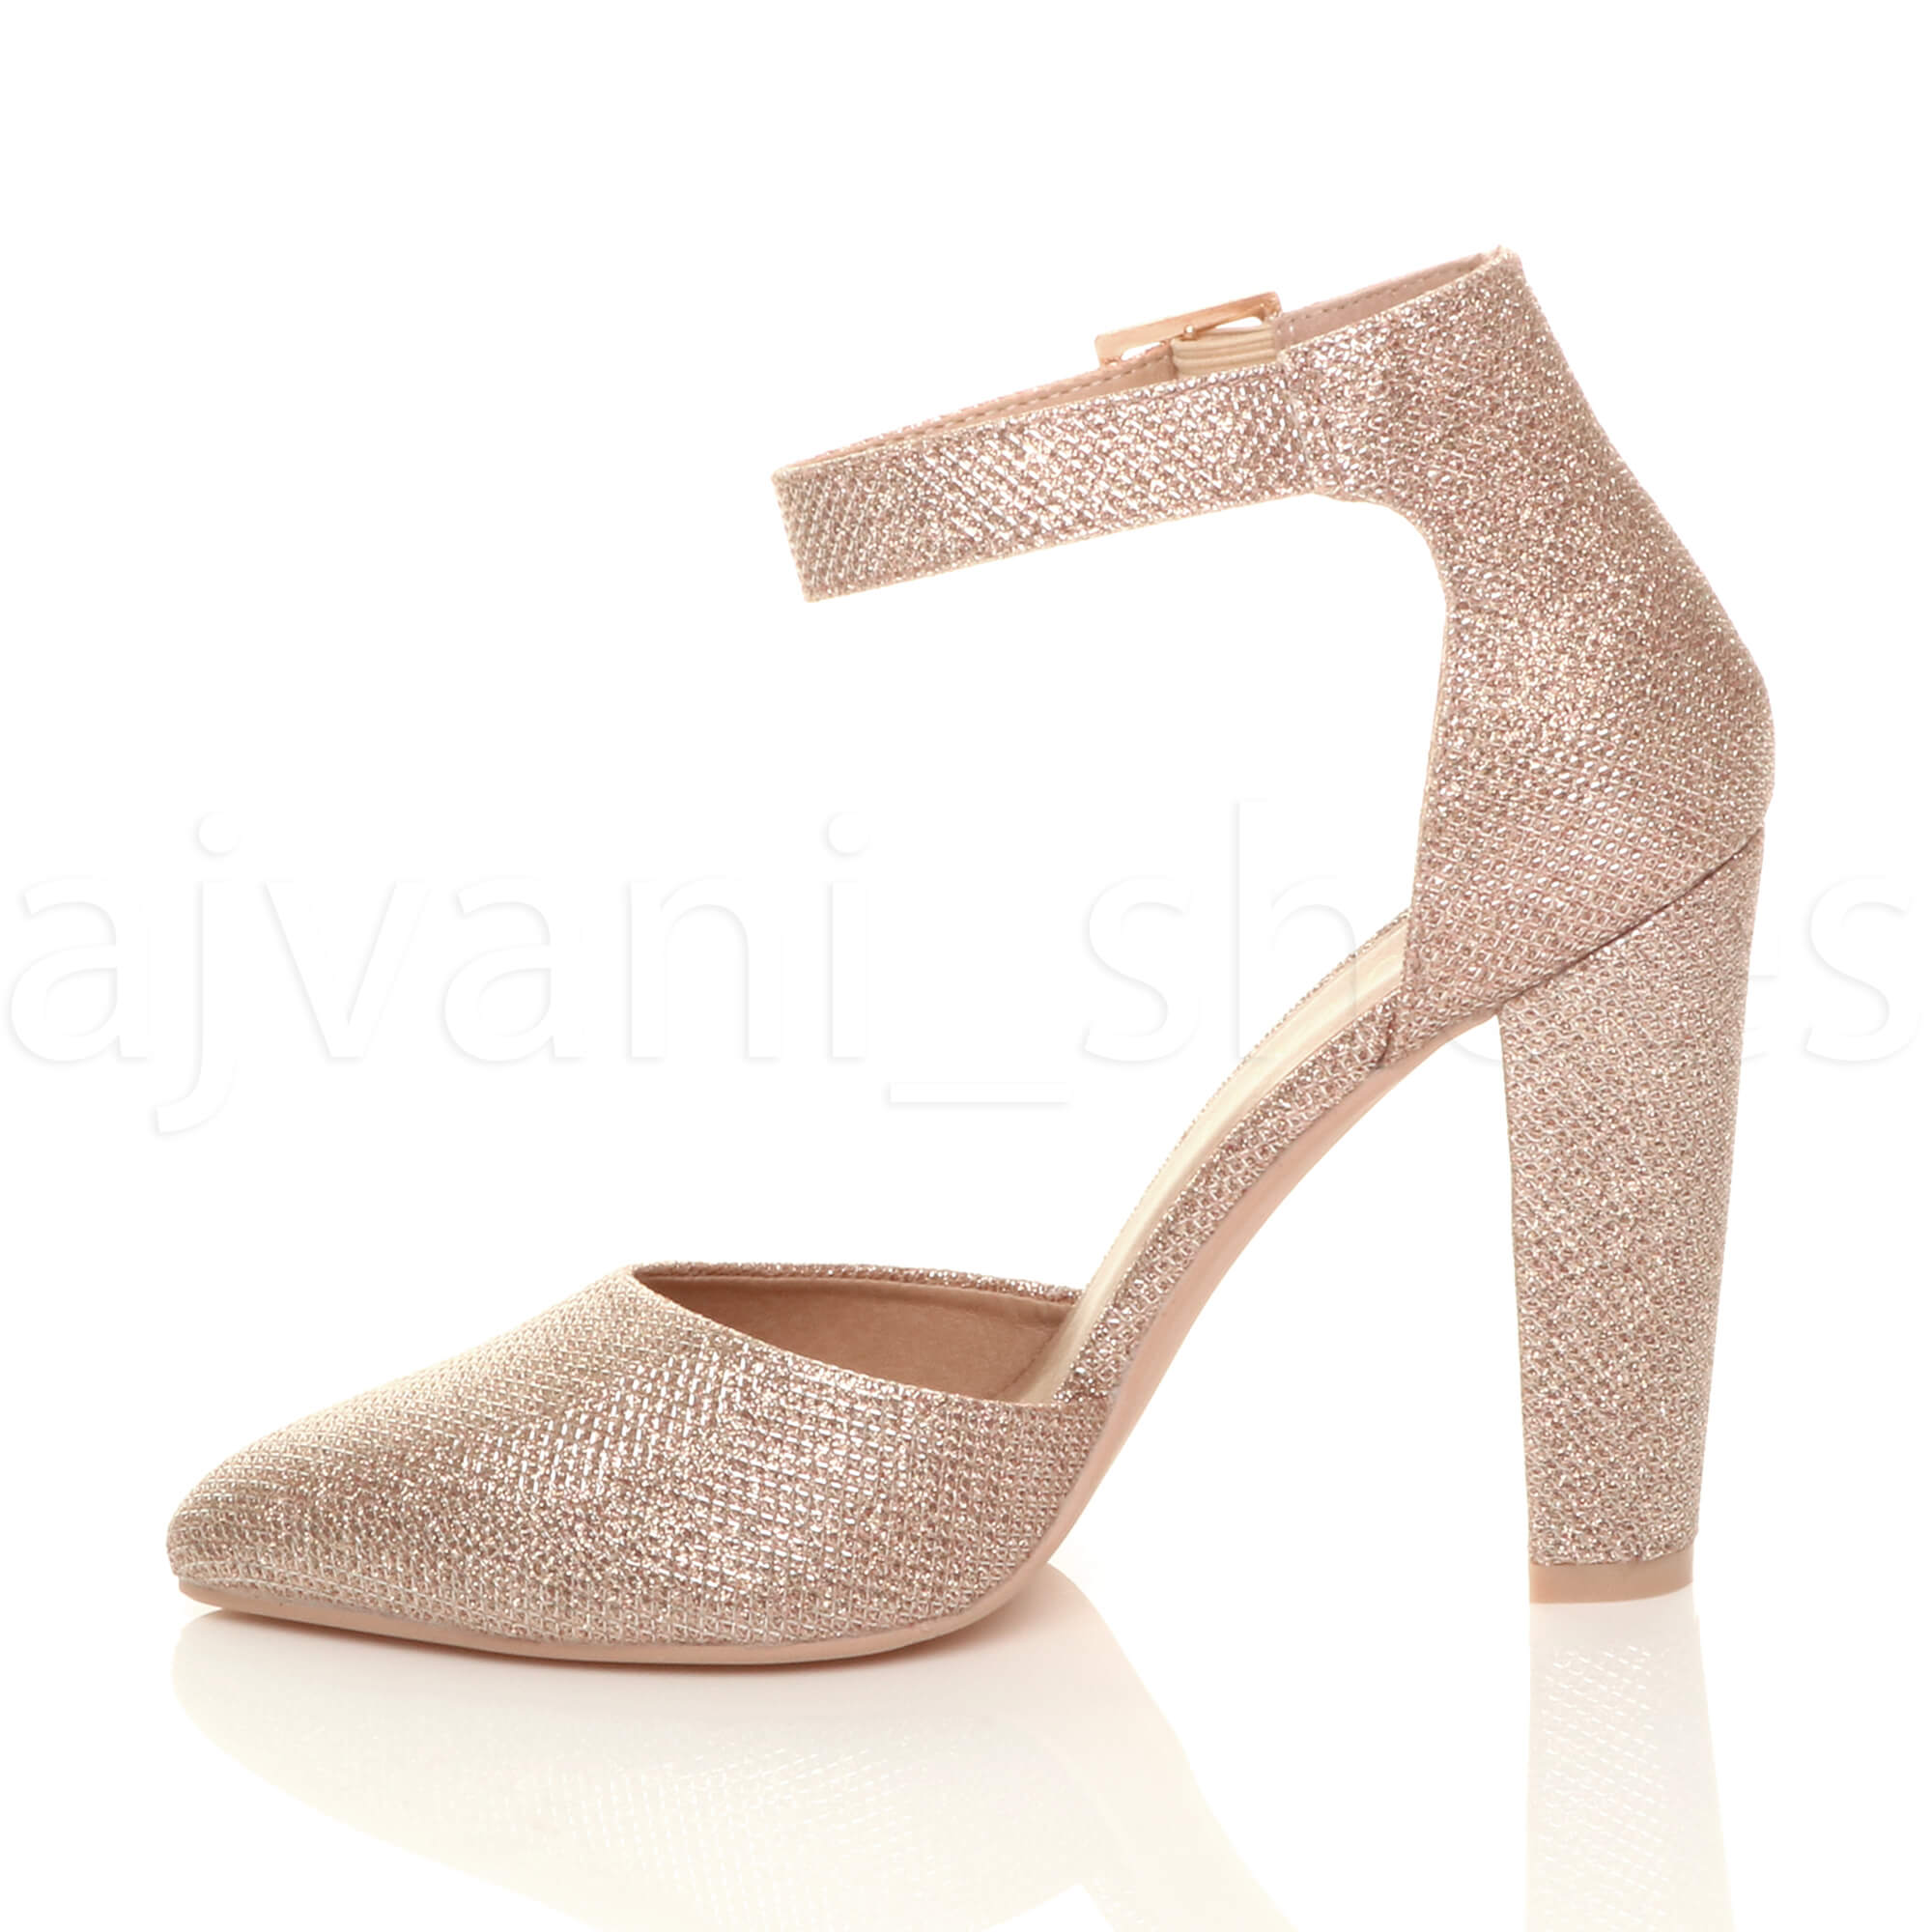 WOMENS-LADIES-HIGH-BLOCK-HEEL-ANKLE-STRAP-BUCKLE-POINTED-COURT-SHOES-SIZE thumbnail 151